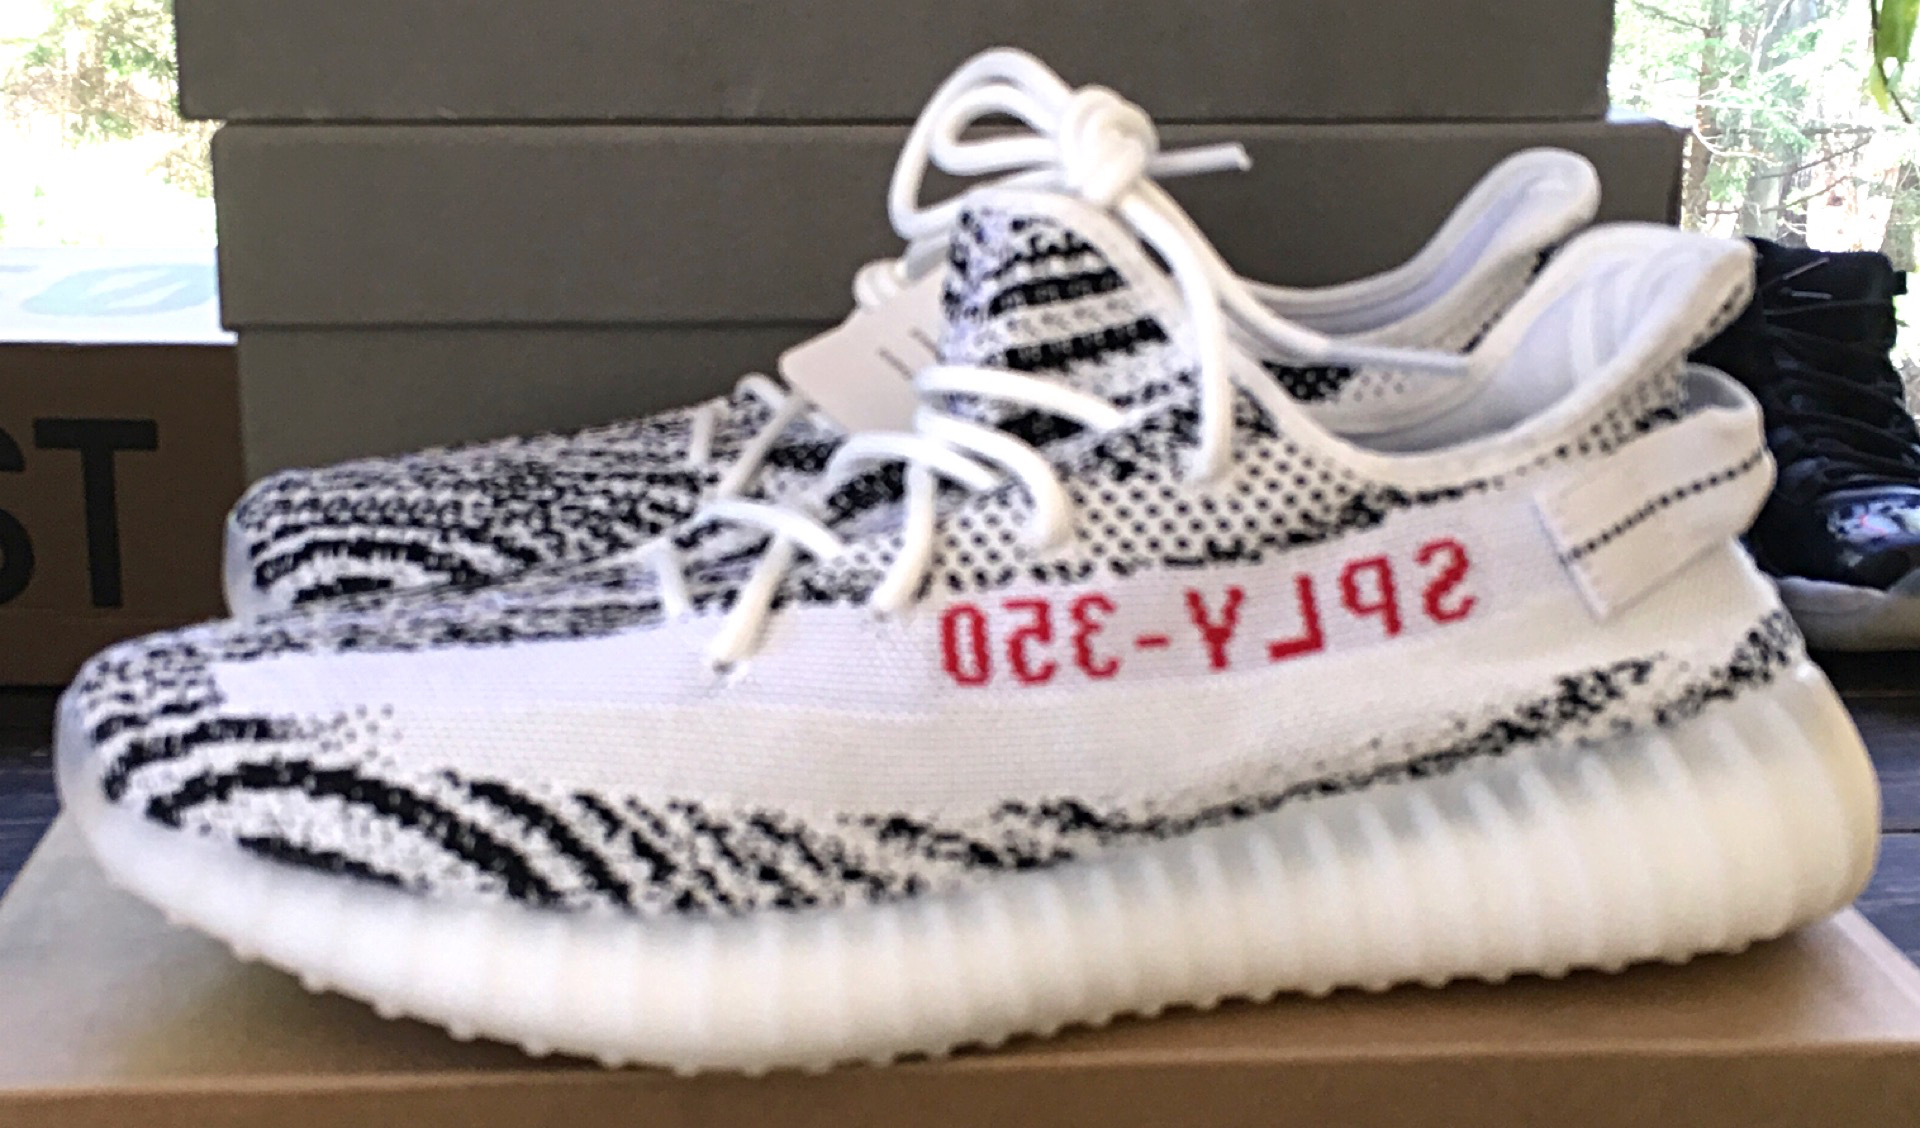 5d3f2152eb5d Adidas Kanye West Yeezy 350 V2 Zebra CP9654 White Black Red Size 10 on  Storenvy